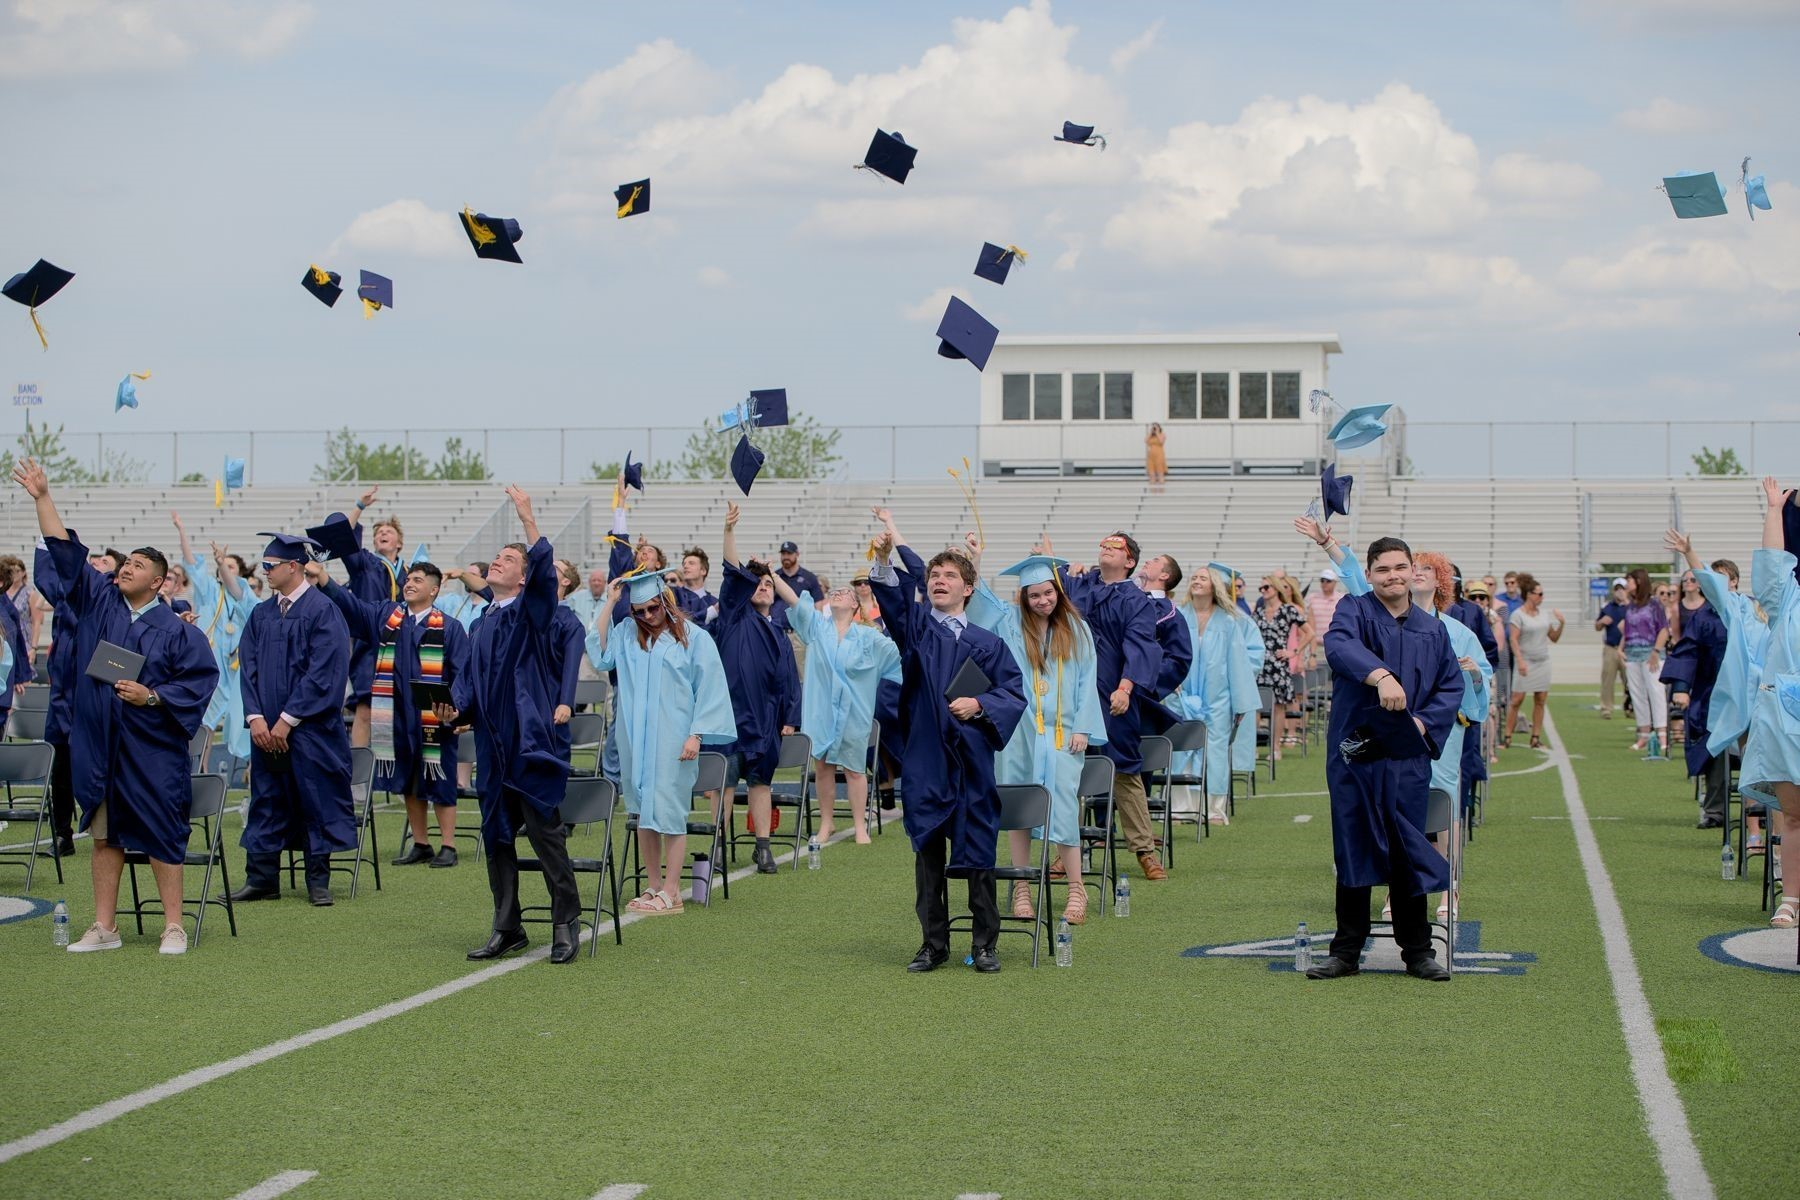 The Class of 2021 throw their graduation hats in the air at the end of the graduation ceremony.